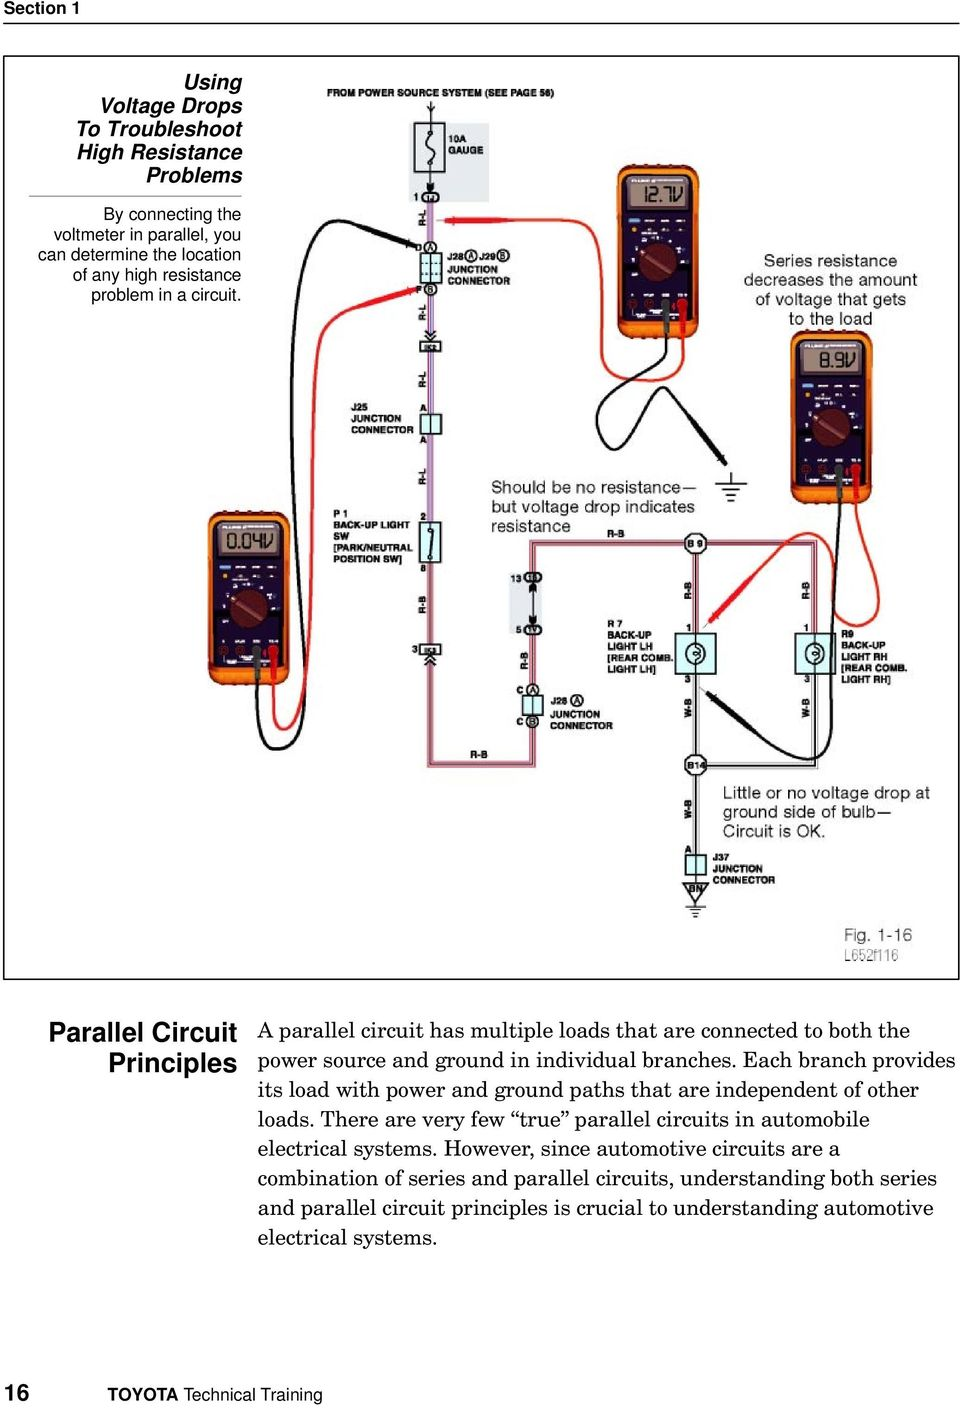 "Each branch provides its load with power and ground paths that are independent of other loads. There are very few true"" parallel circuits in automobile electrical systems."